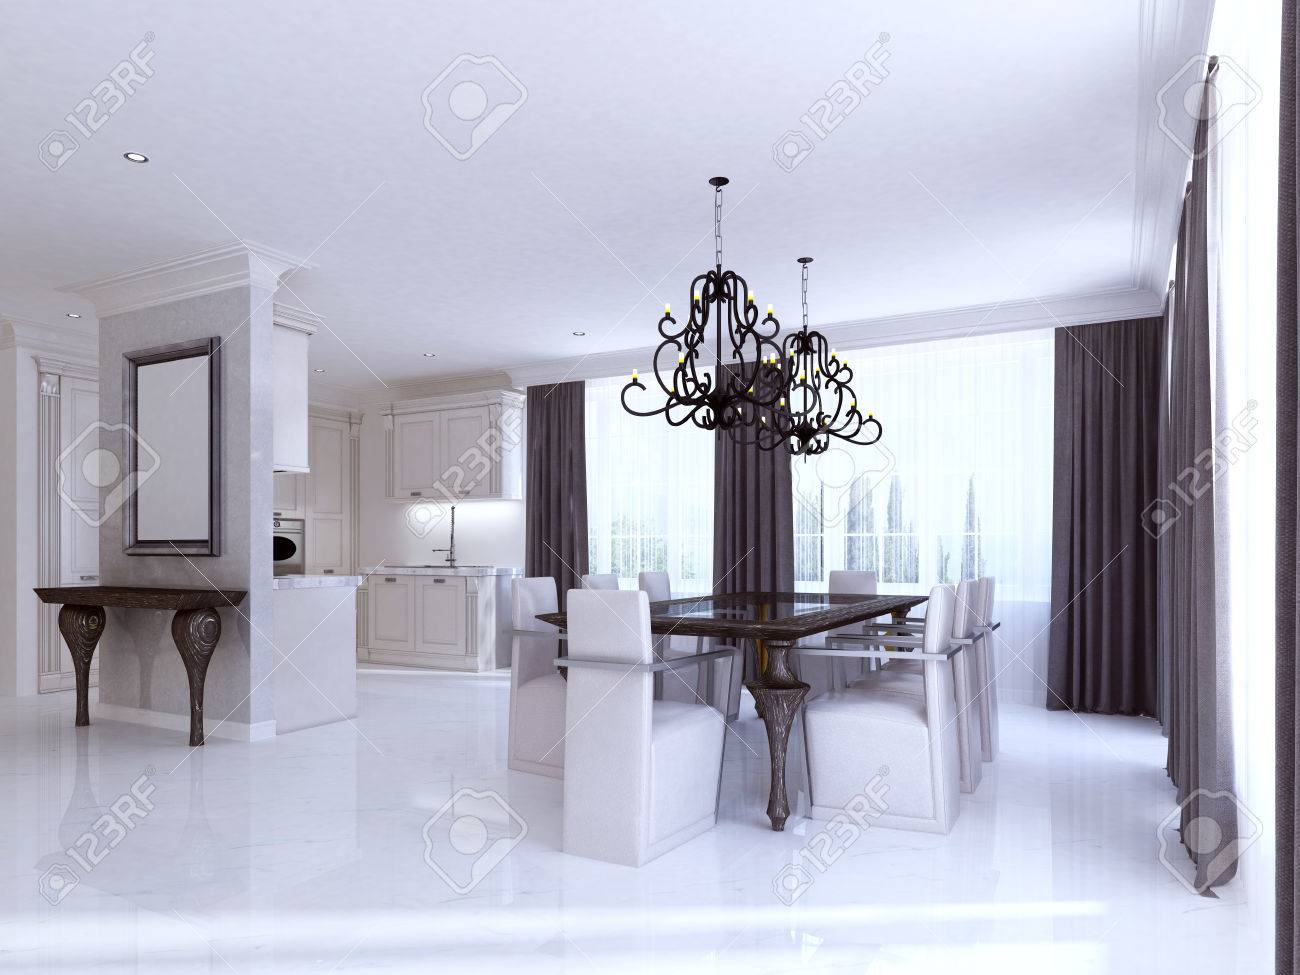 Classic White Kitchen Dining Room In The Style Of Art Deco. Large Dining  Table